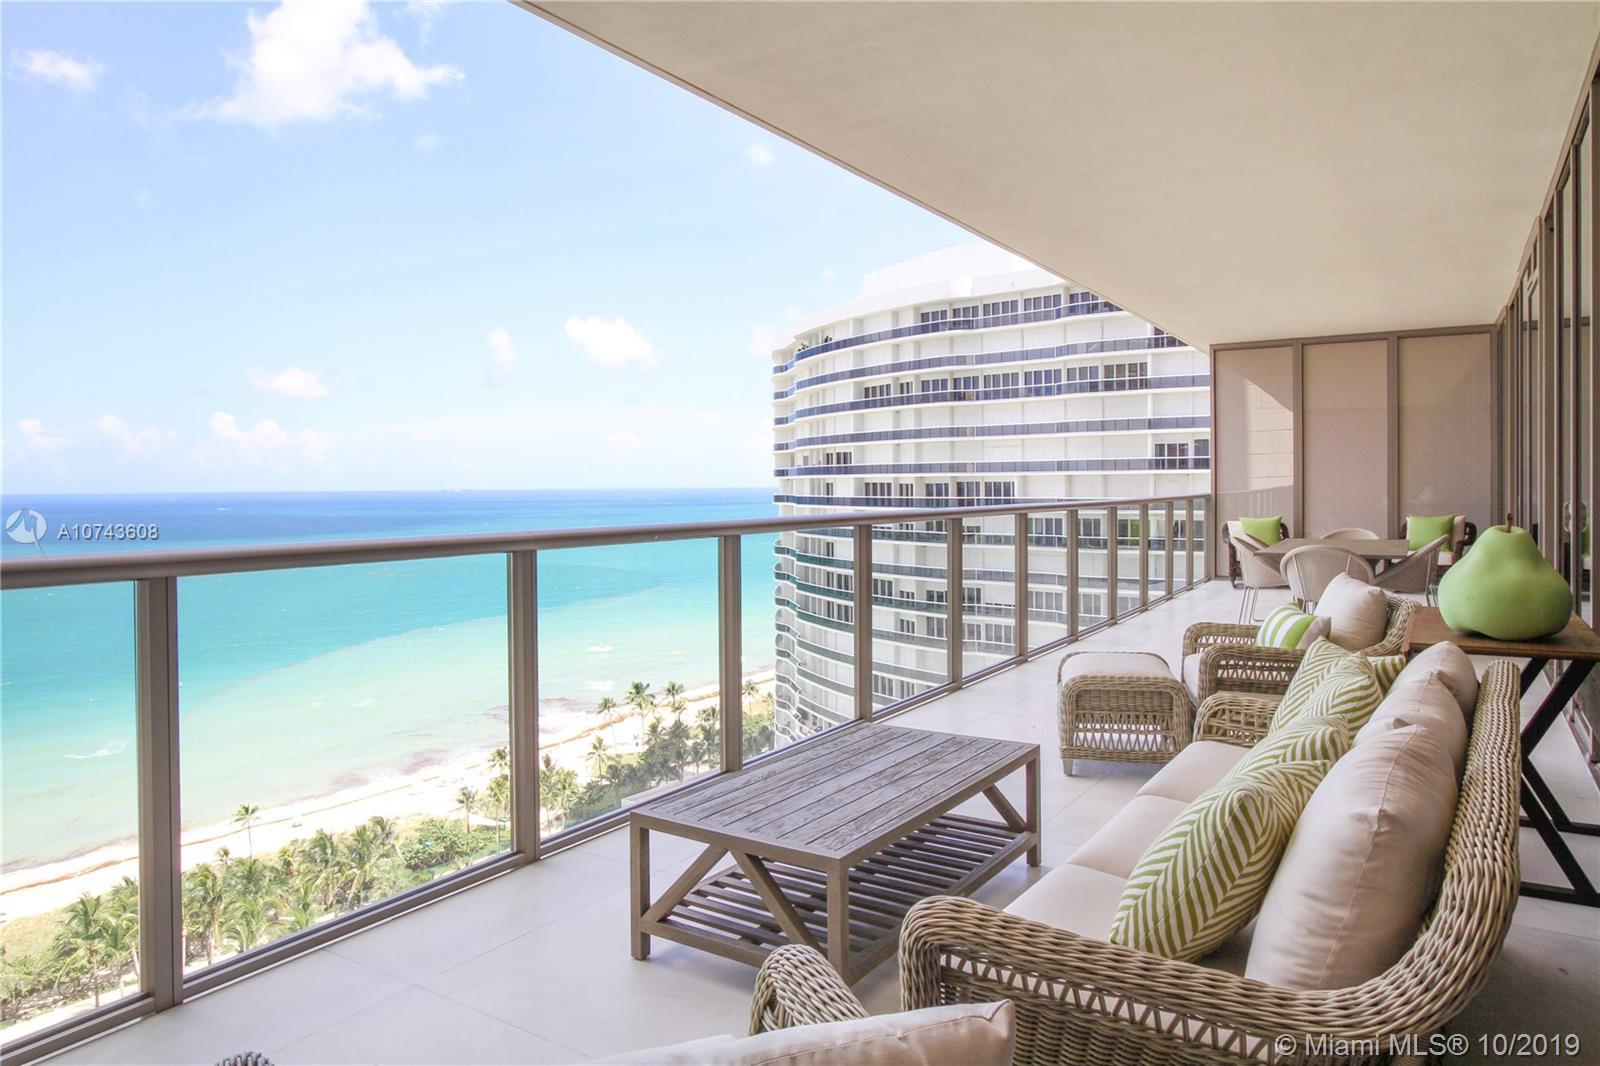 Spectacular Oceanfront residence with breathtaking, unobstructed views of the Atlantic Ocean, intrac